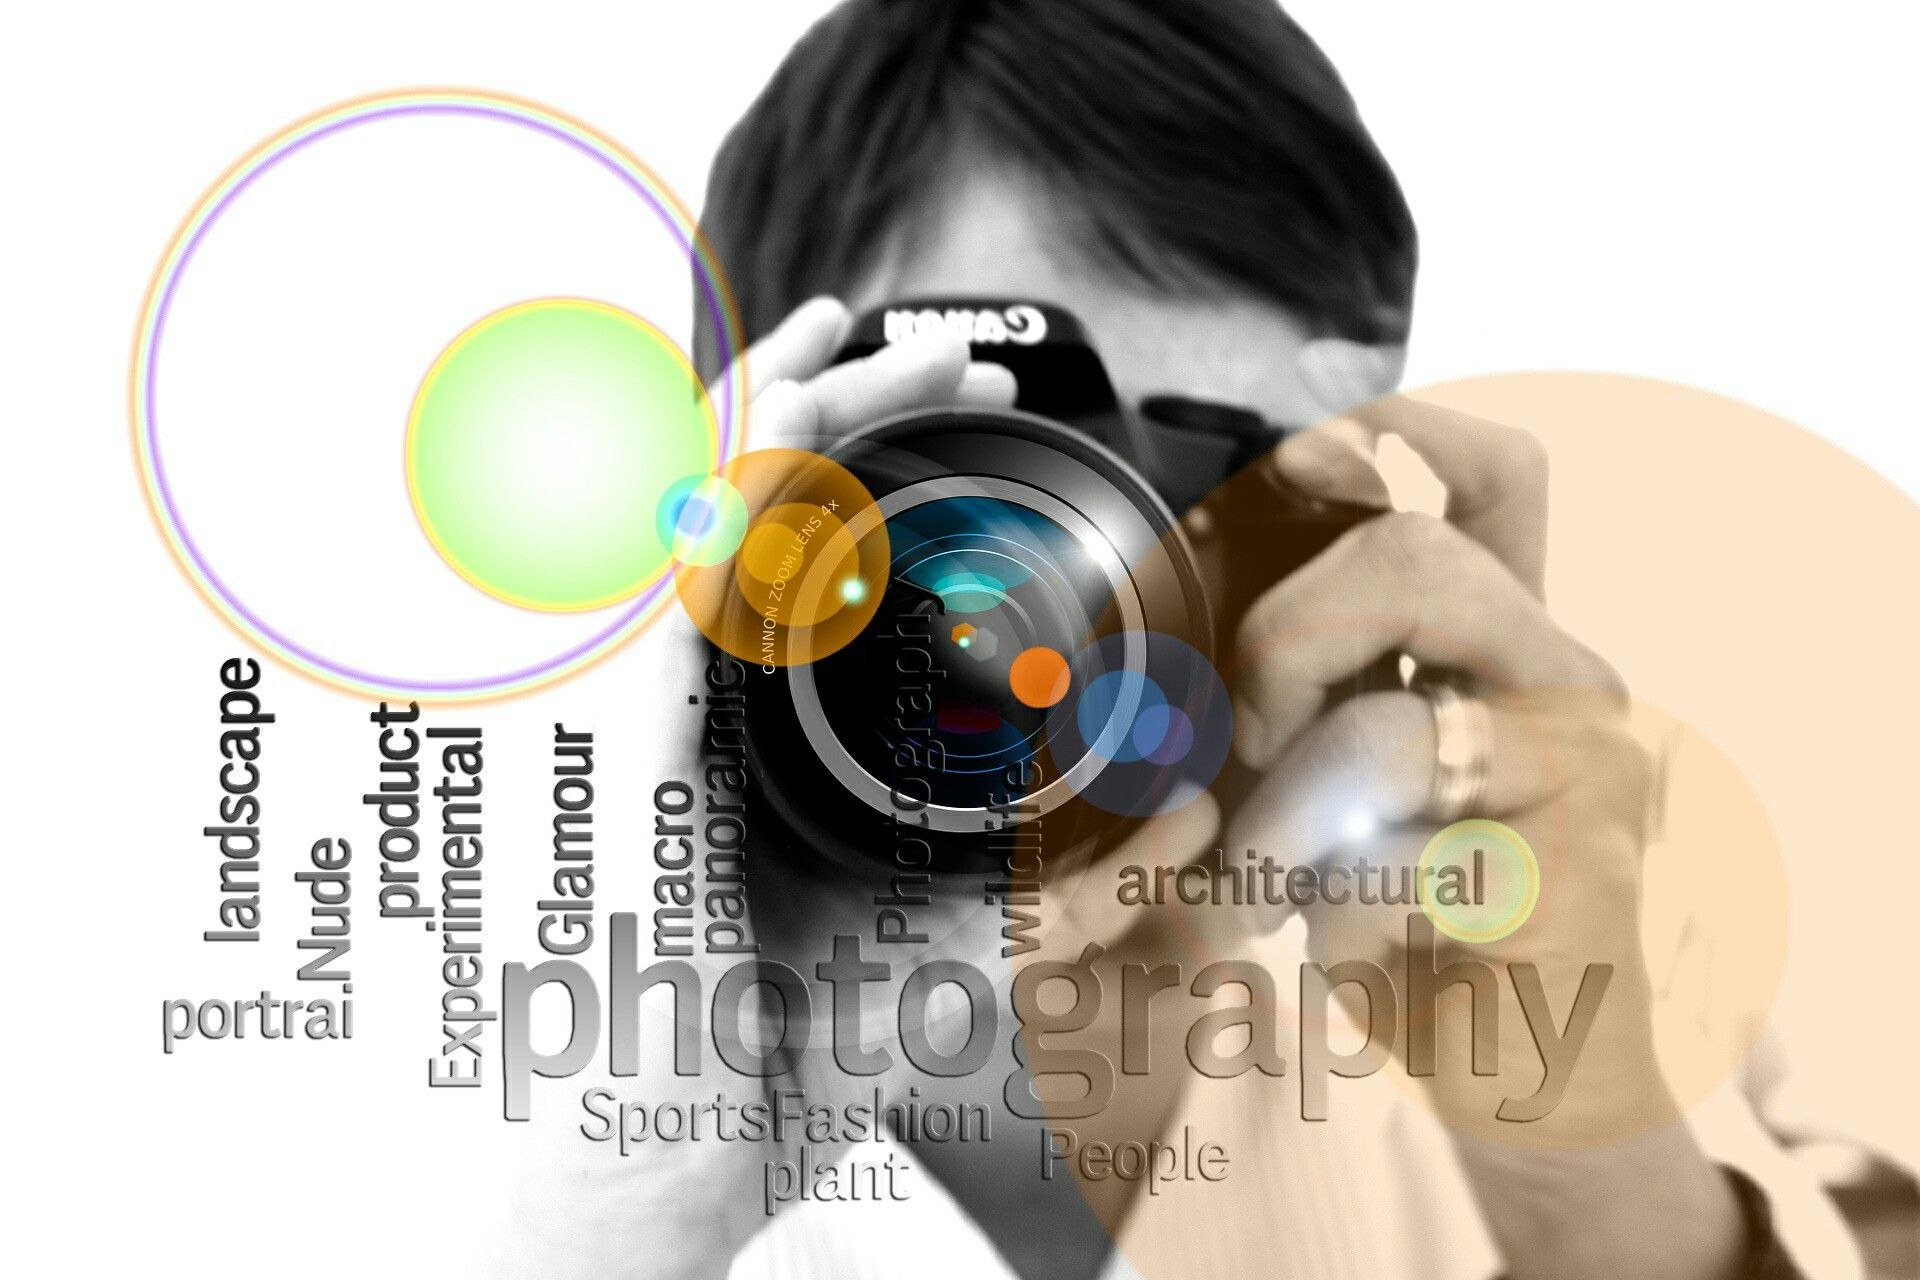 Get paid to take pictures! Click the link to get started! http://b068eb322dge9i4ilh3ftghib2.hop.clickbank.net/